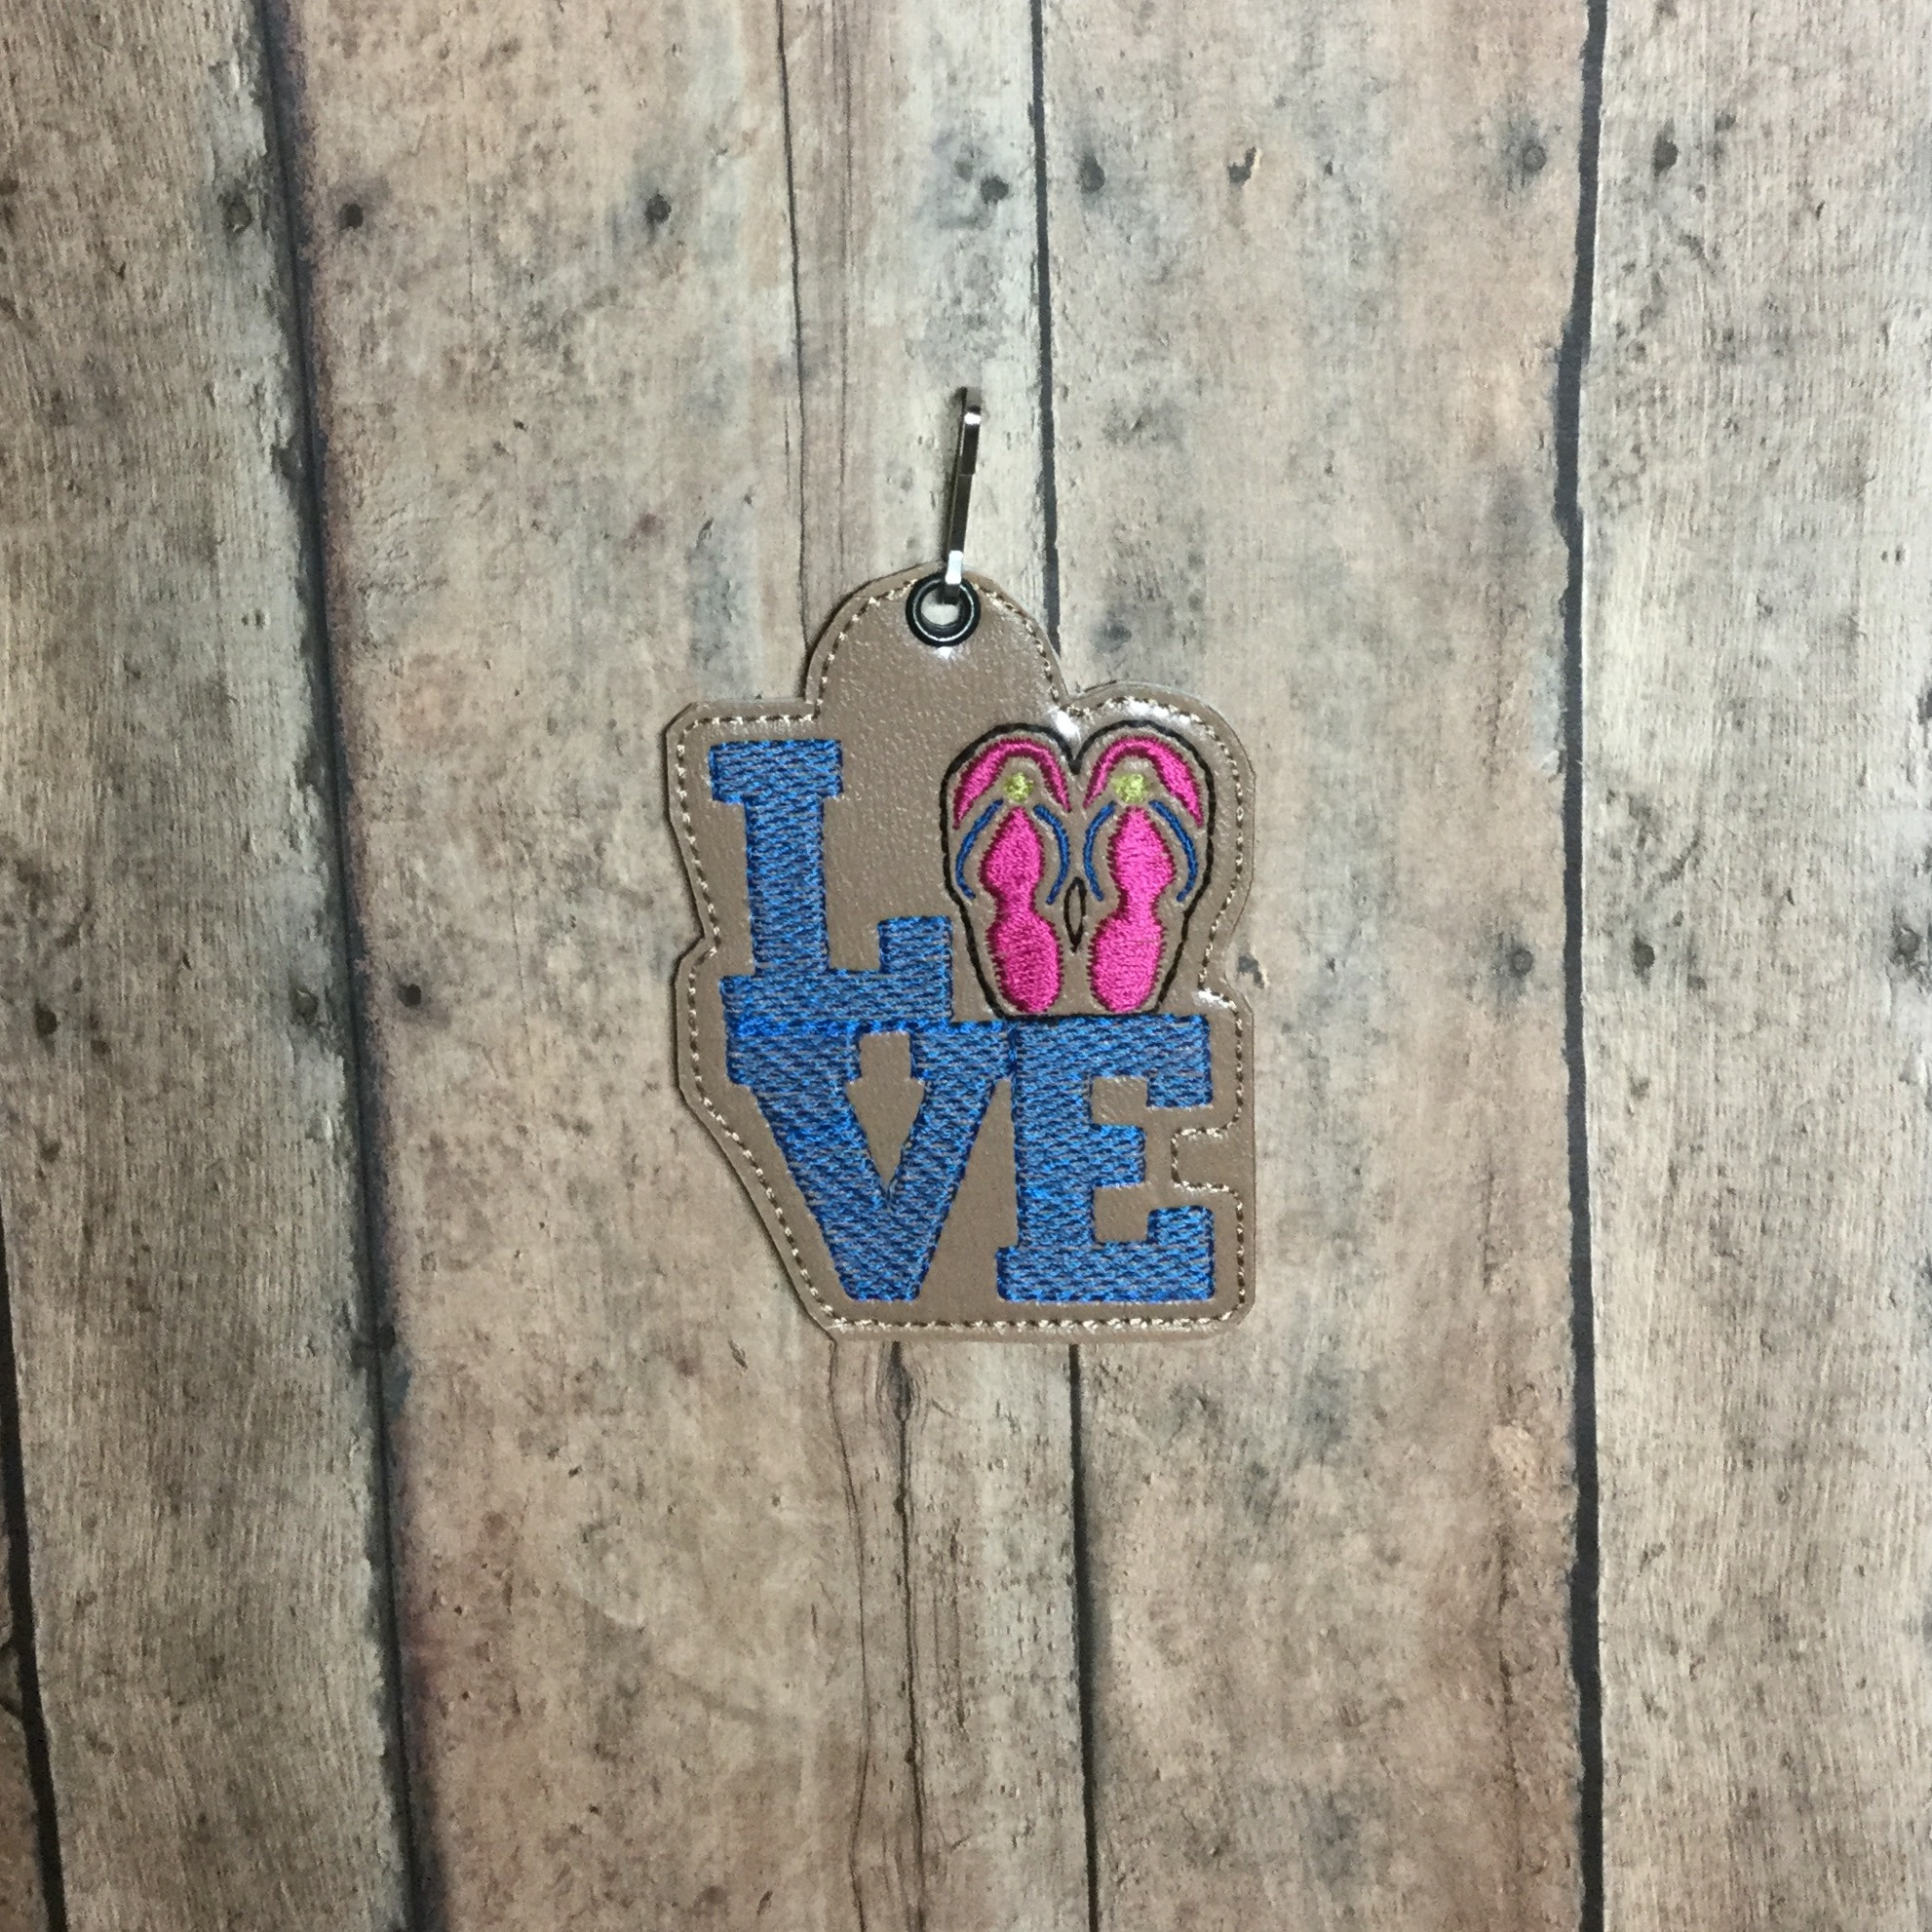 Flipflop Love Snaptab / Keyfob Embroidery Design